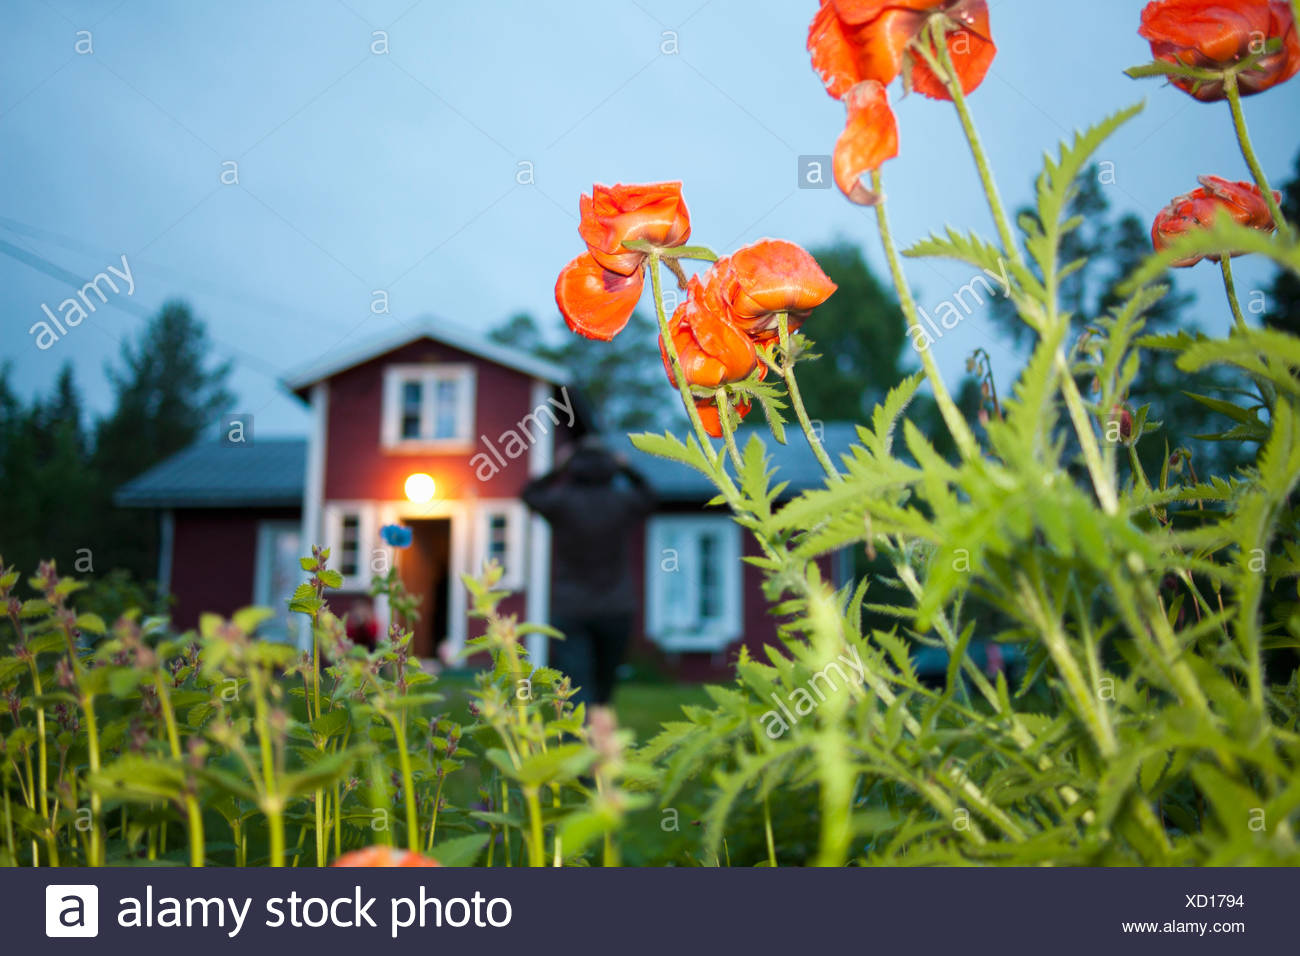 Poppies growing outside house - Stock Image